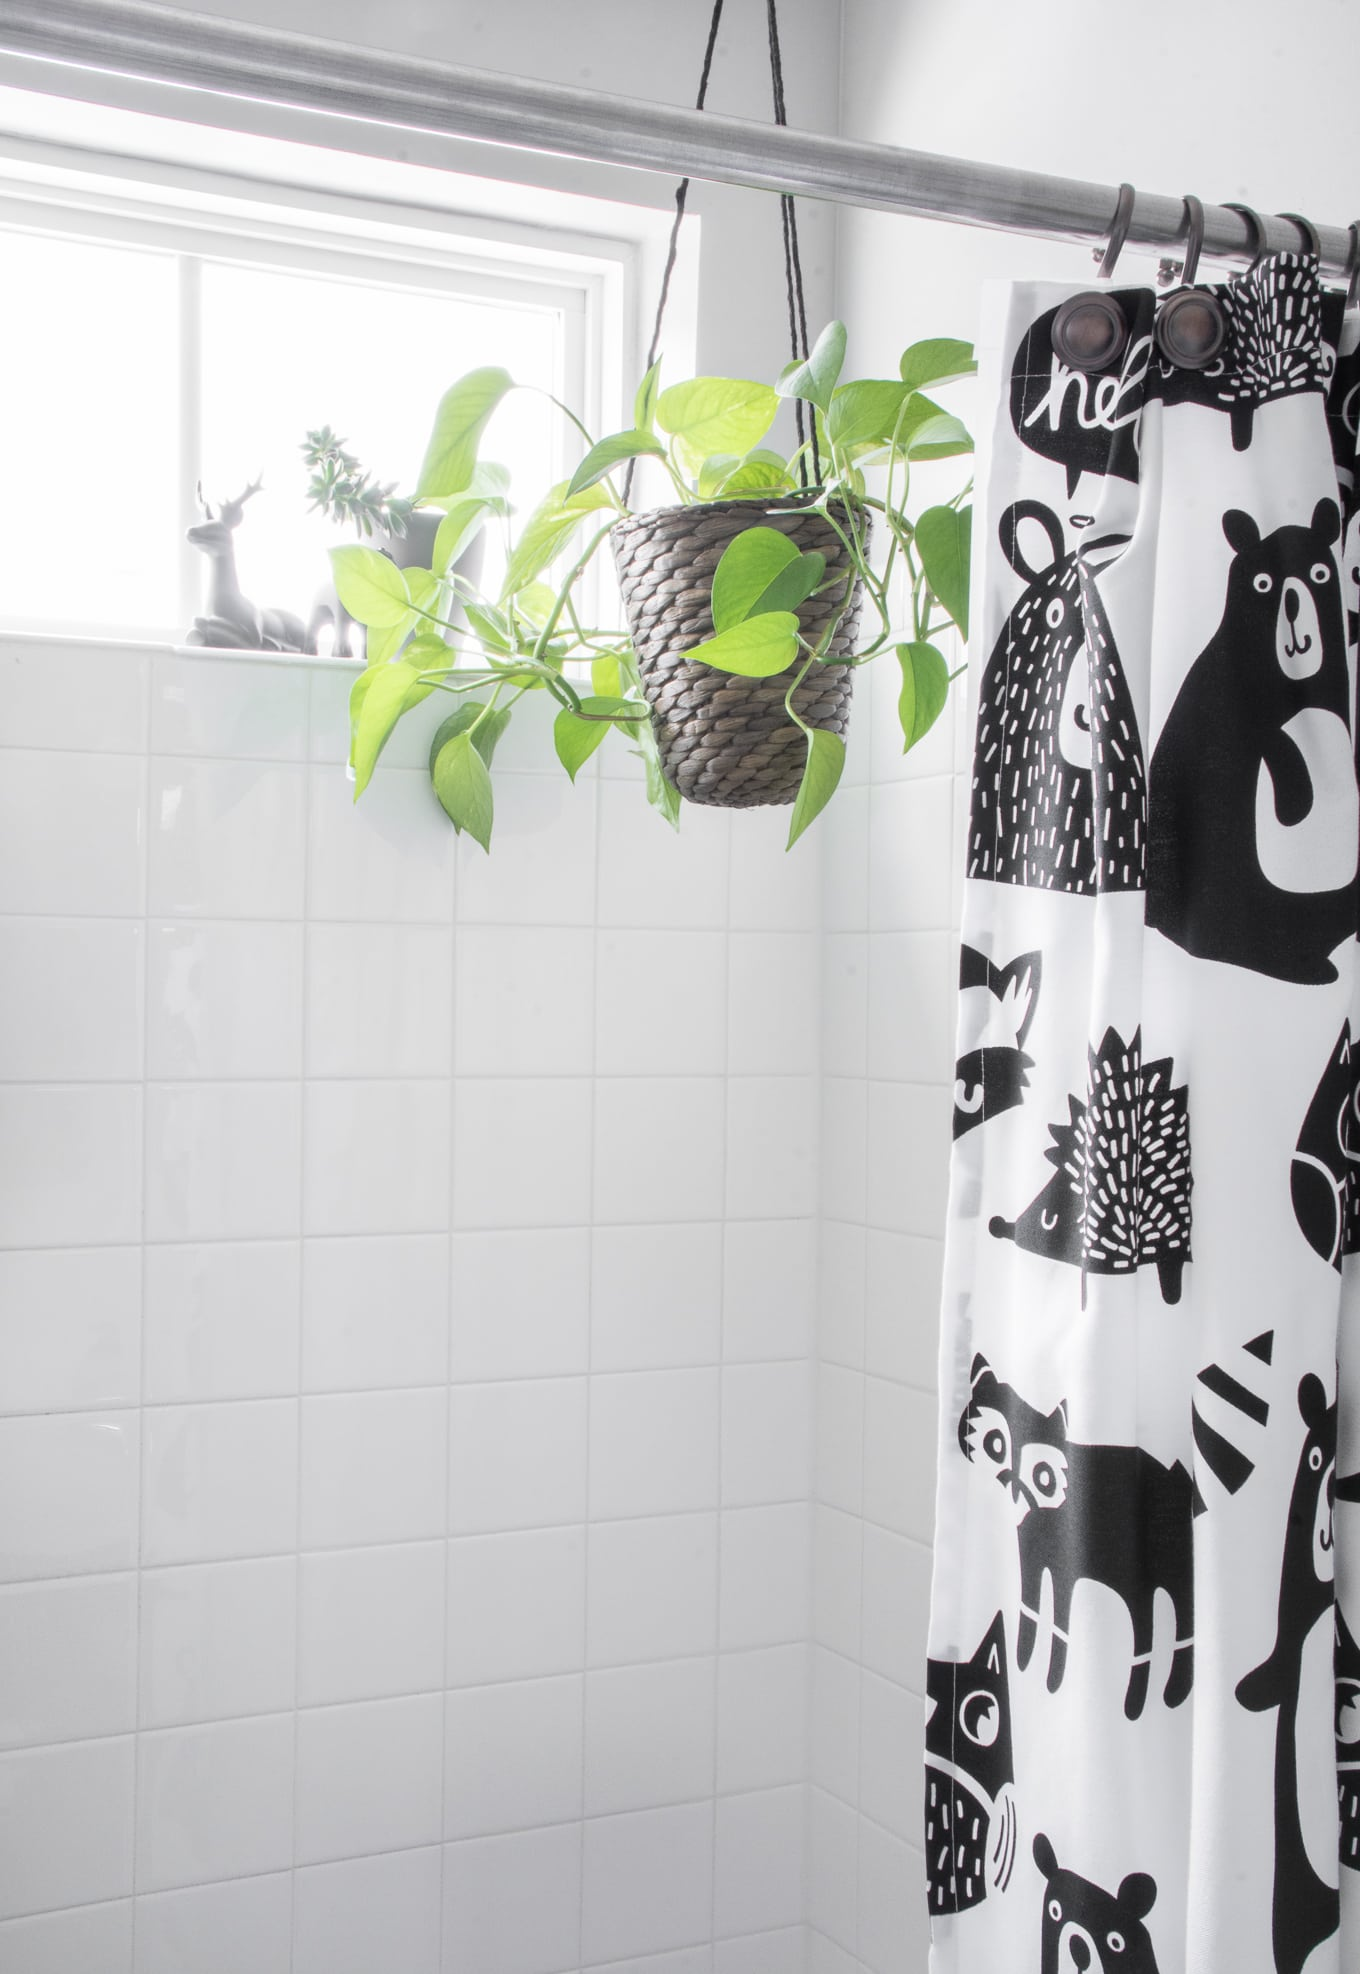 Hanging pothos plant in a bathroom